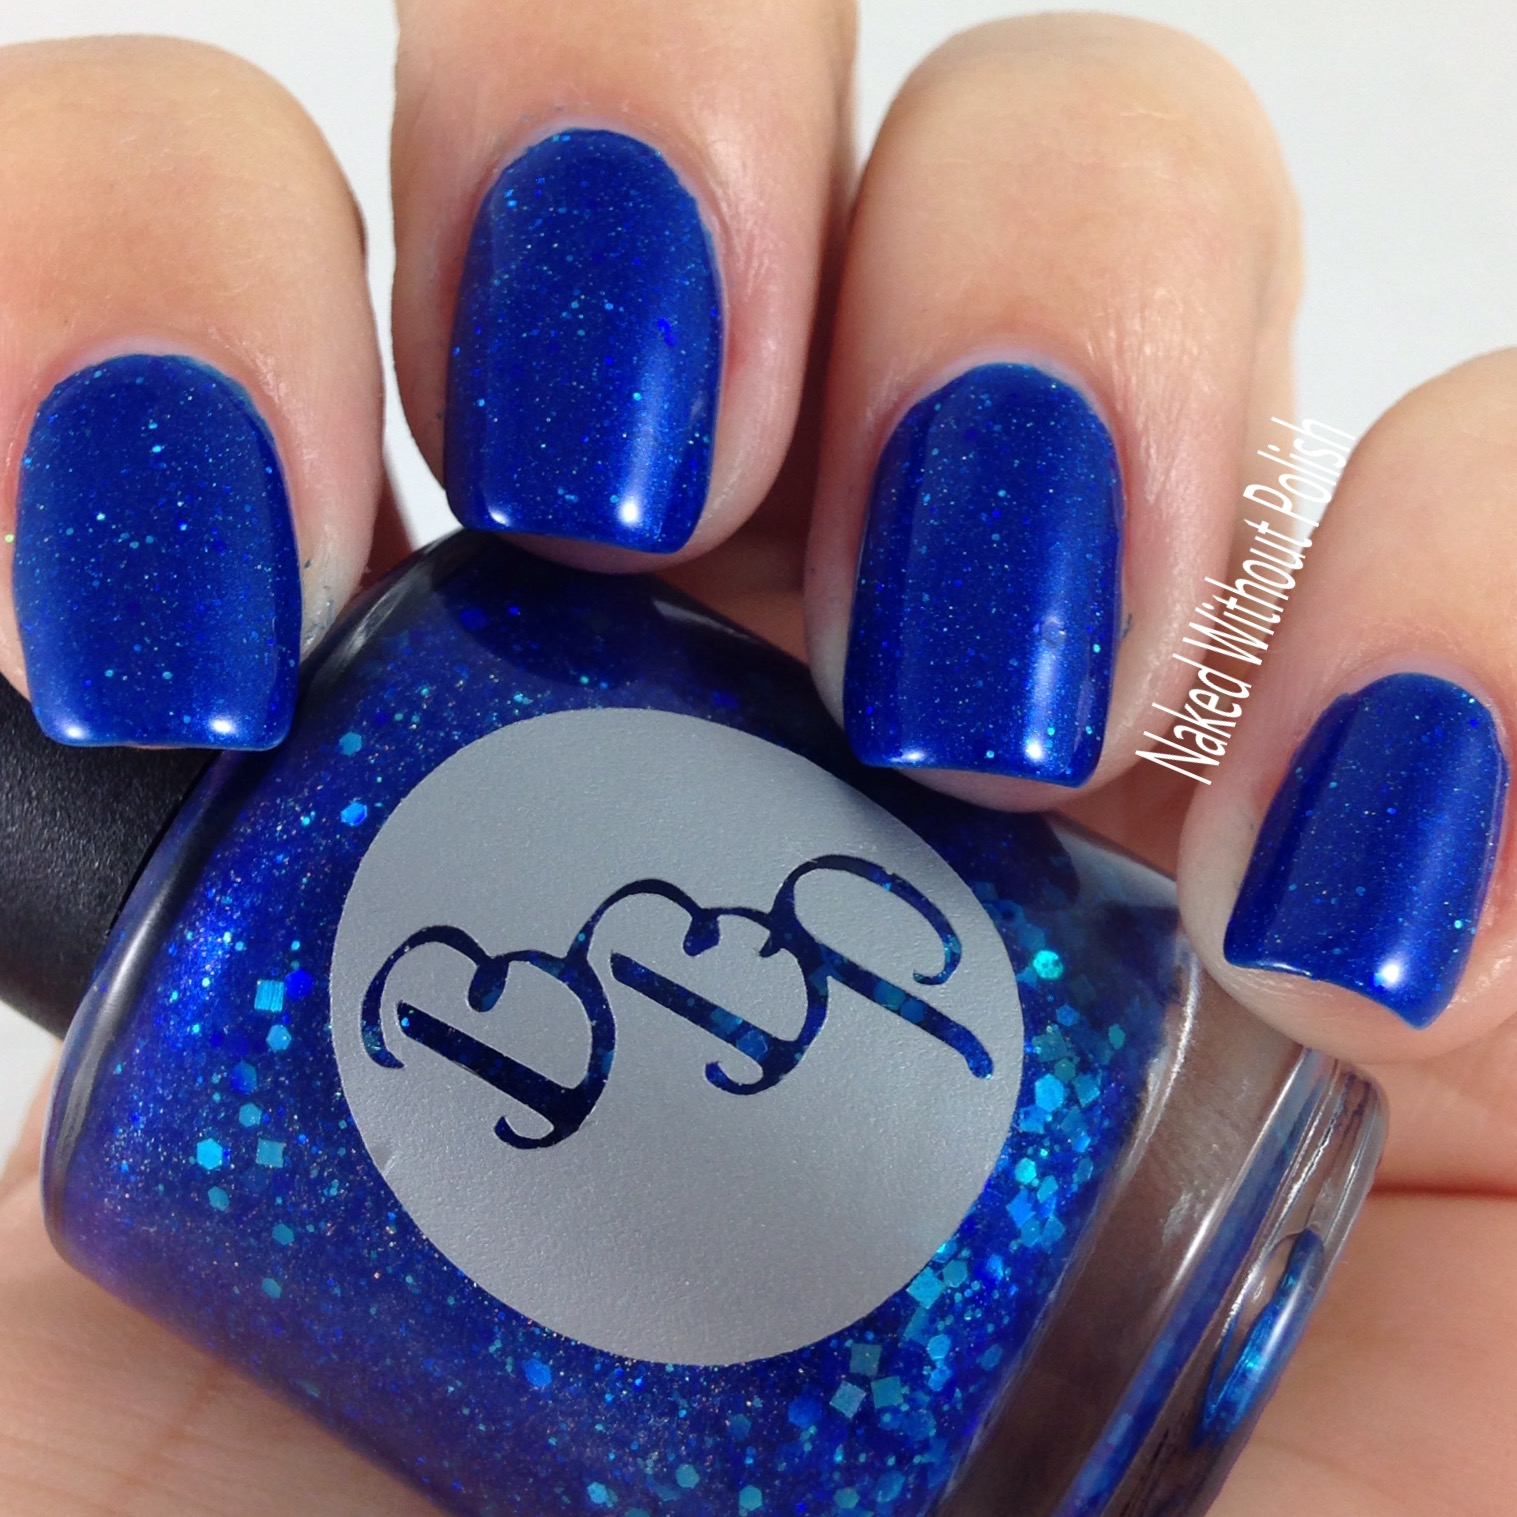 Bad-Bitch-Polish-Blue-My-Mind-6